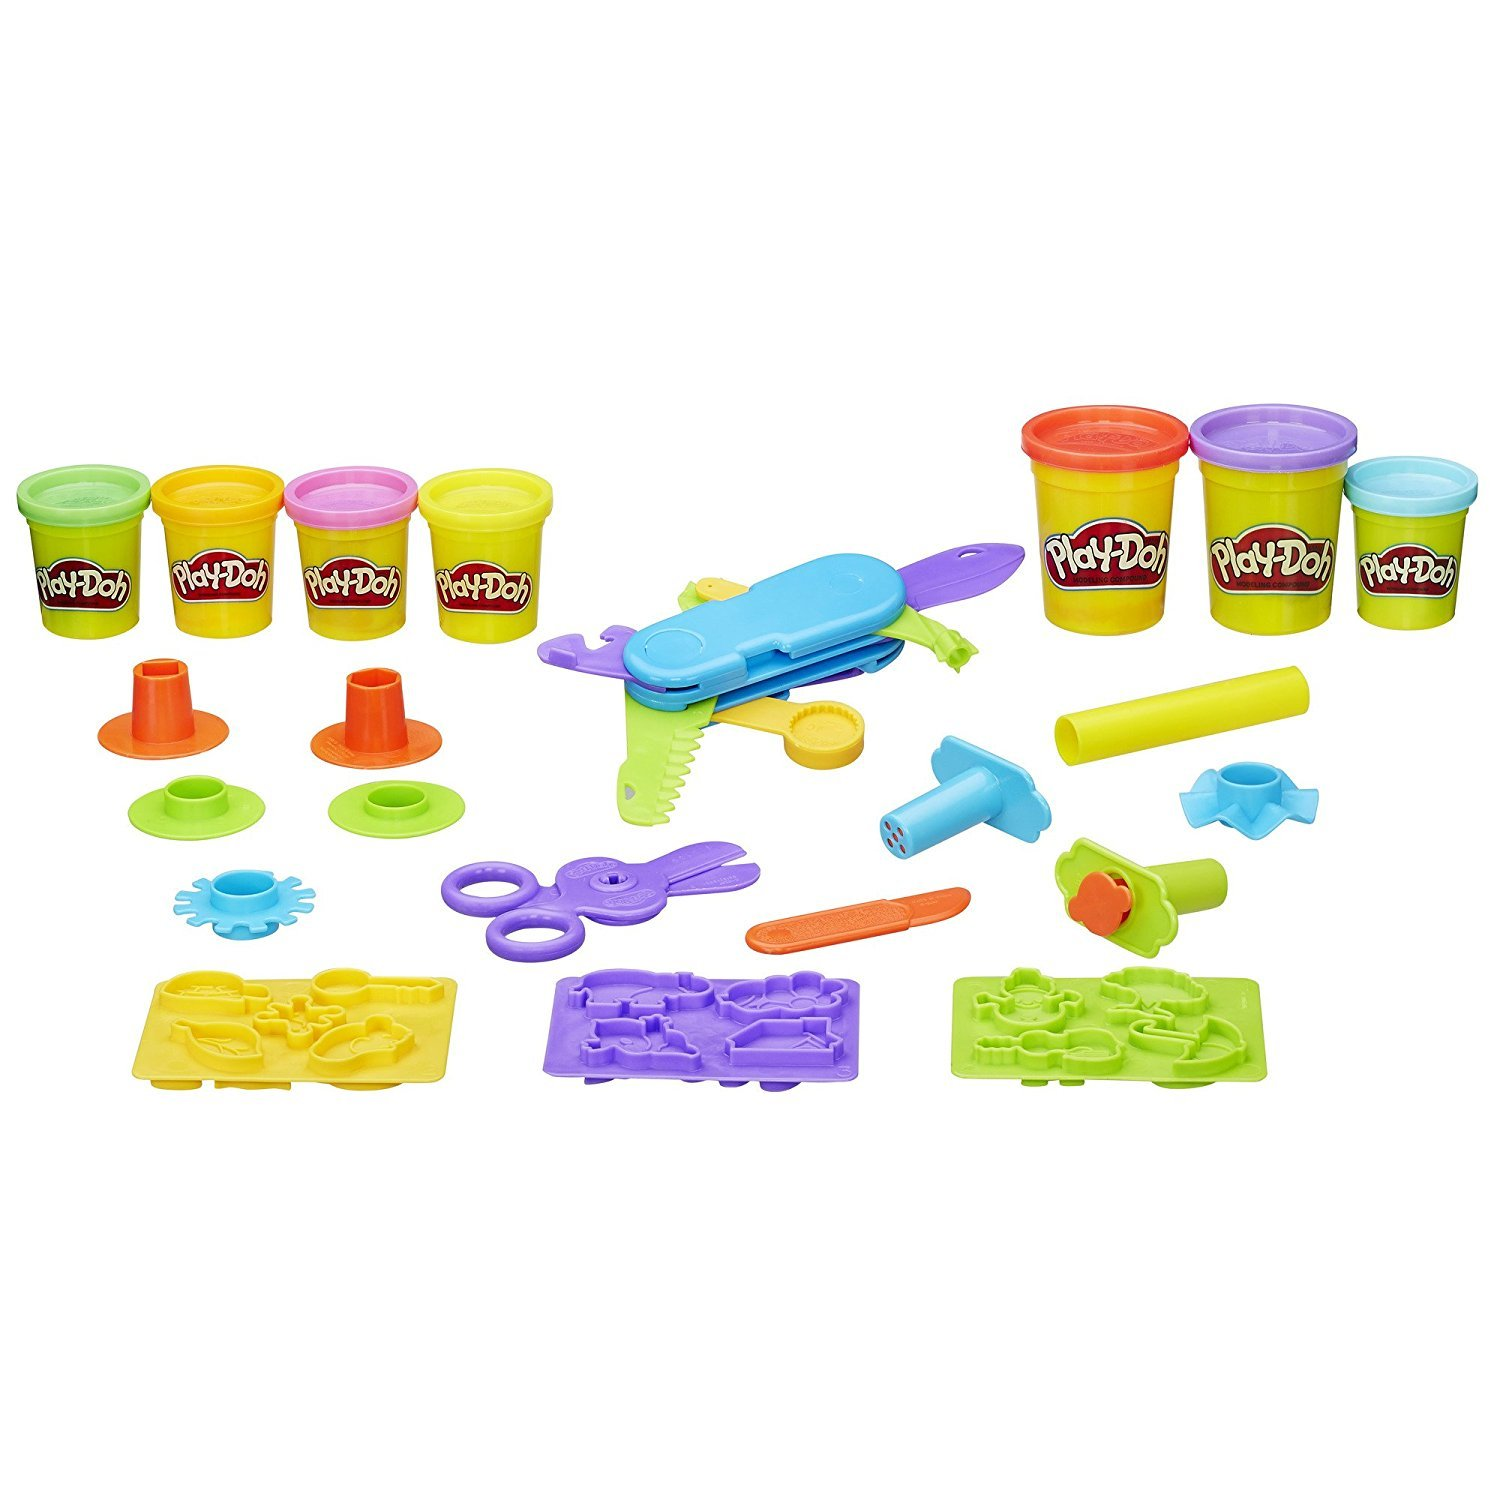 Play-Doh Toolin Around Playset Play-Doh Plus Compound Bundle PD